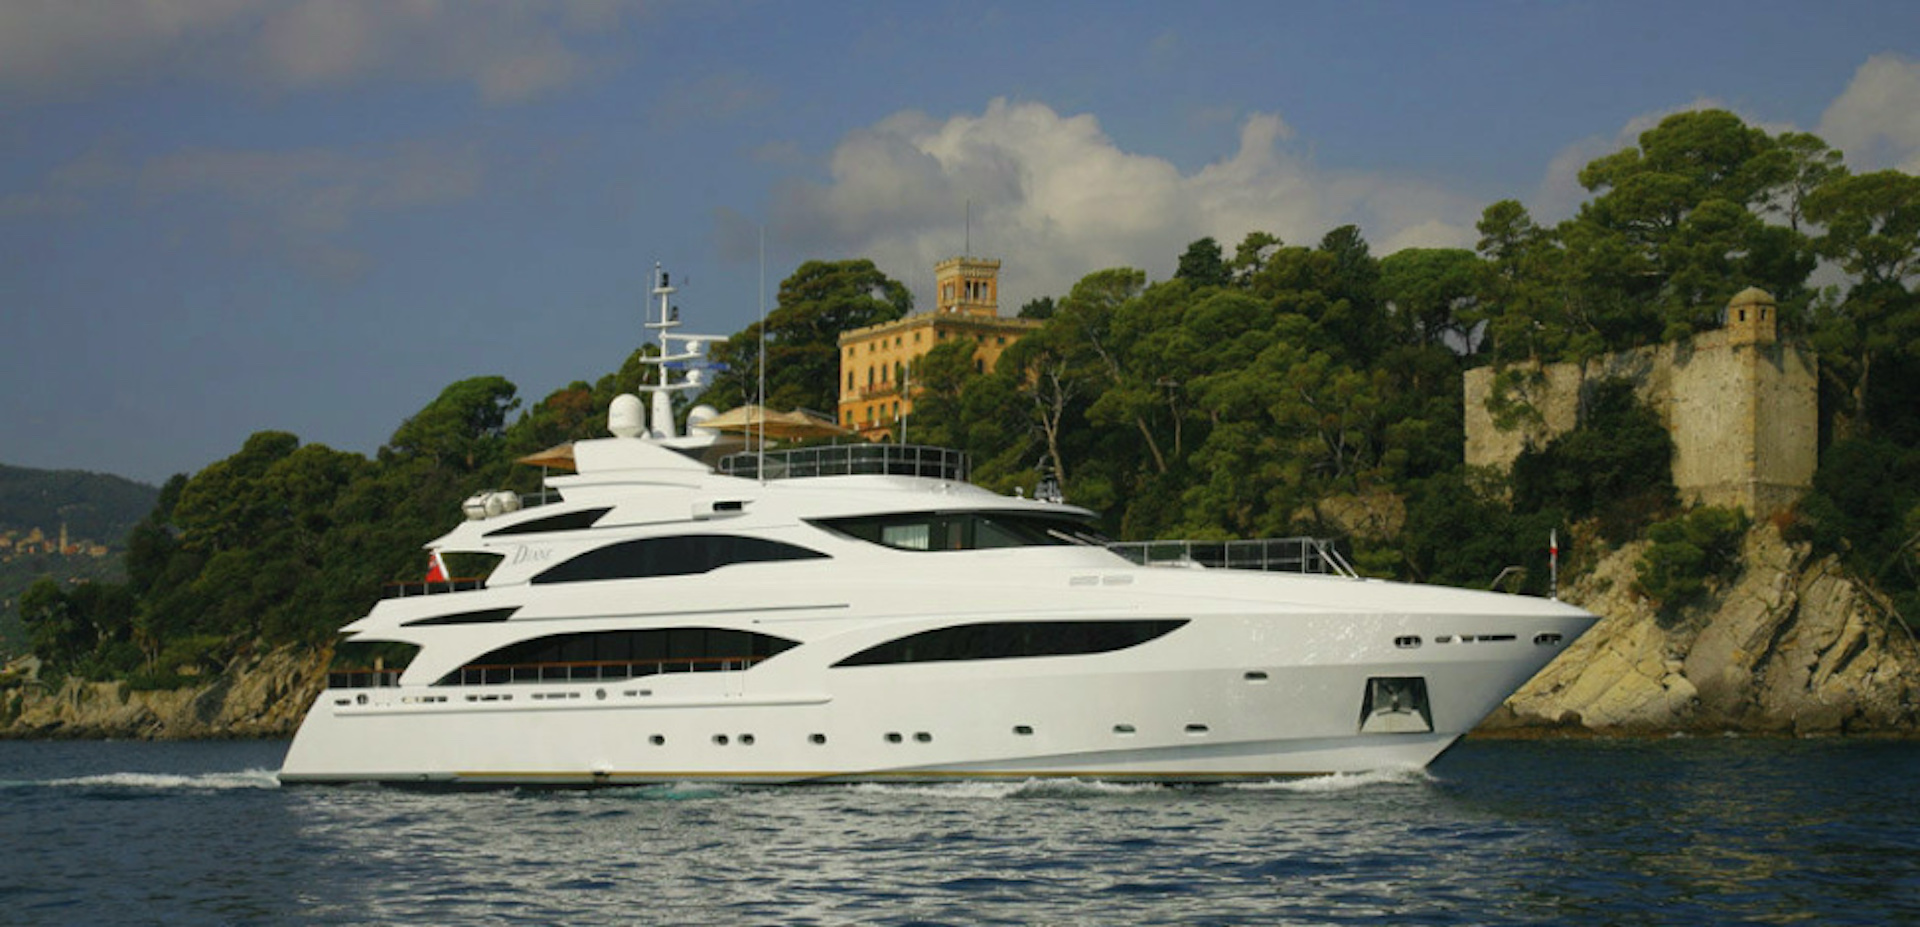 Image result for 5. Motor yacht a - $440 million